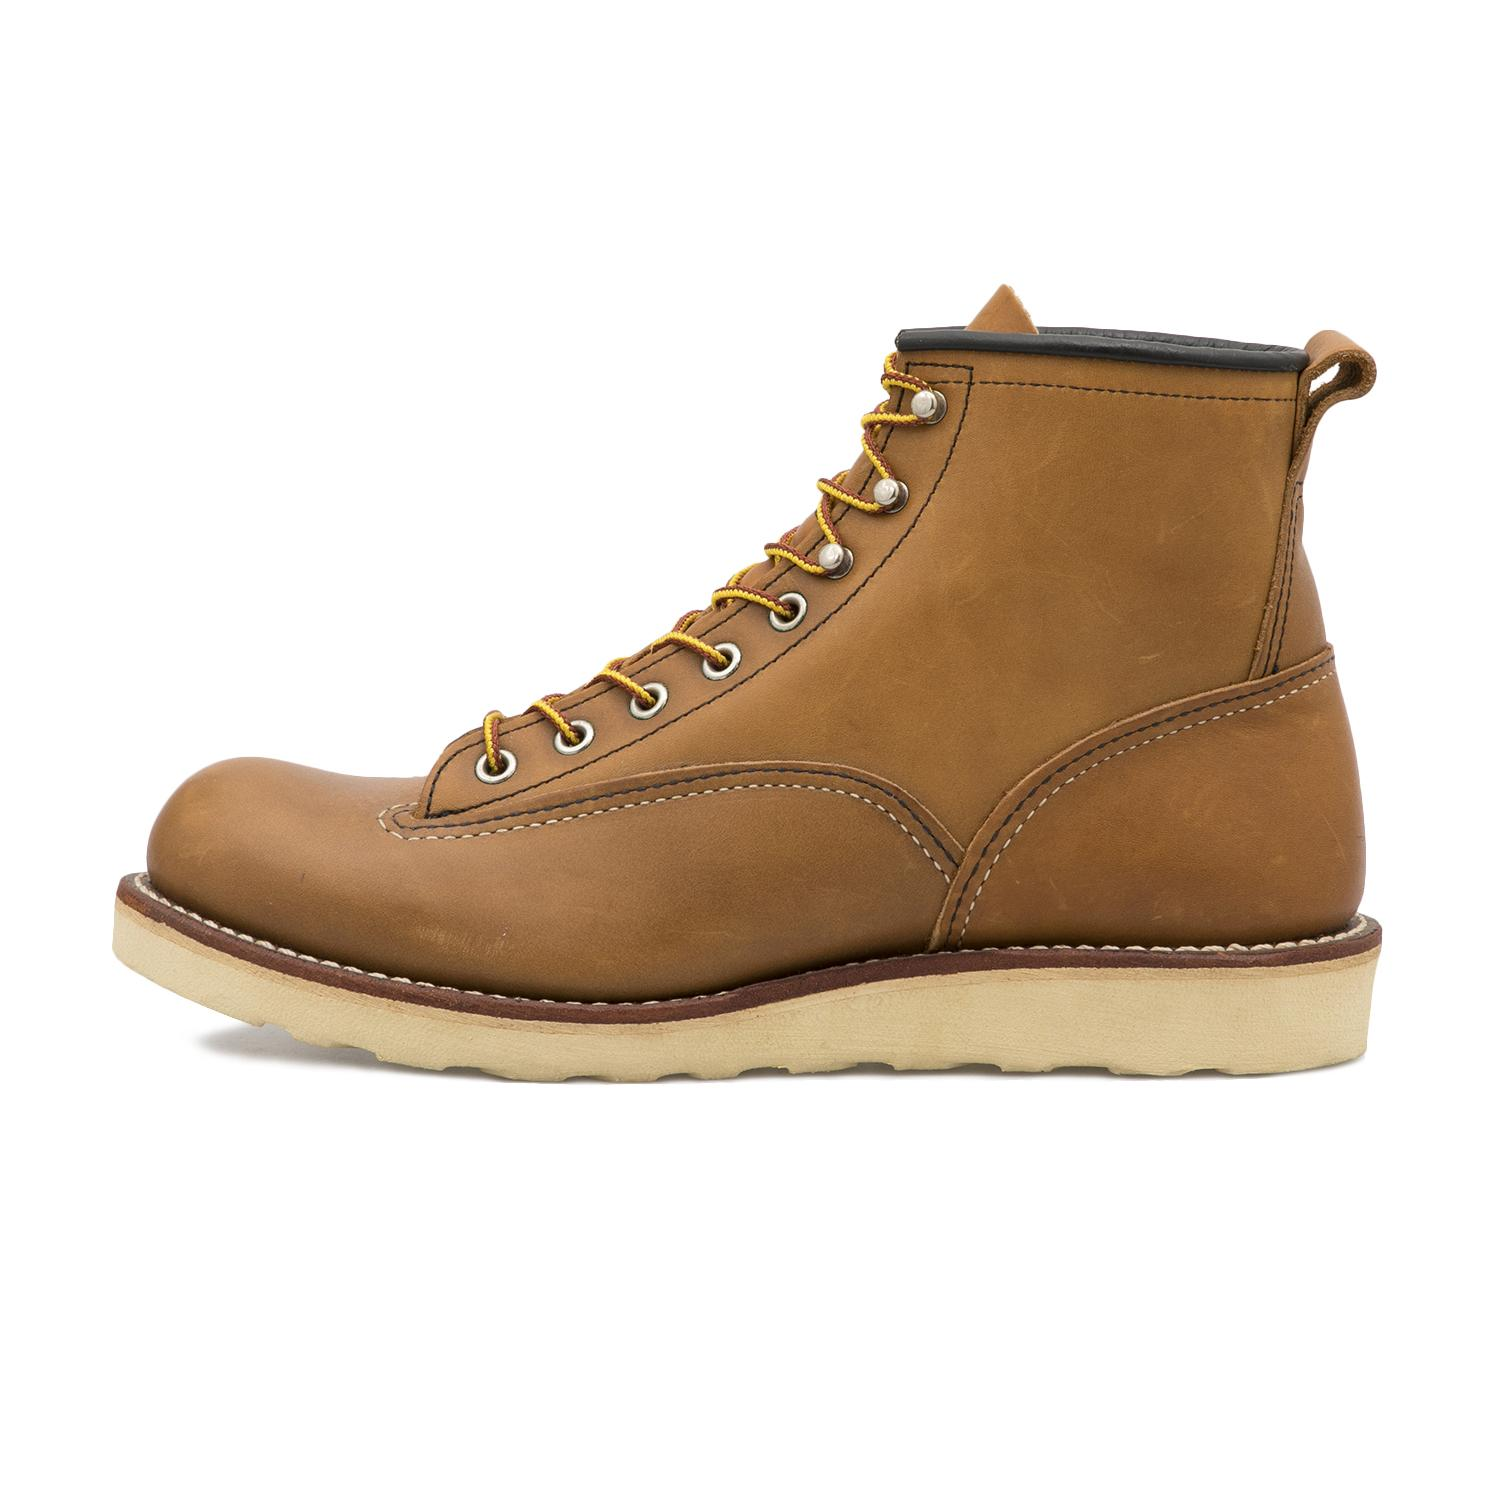 【RED WING】 6'LINEMAN BOOTS 6インチ ラインマンブーツ 2904 BROWN